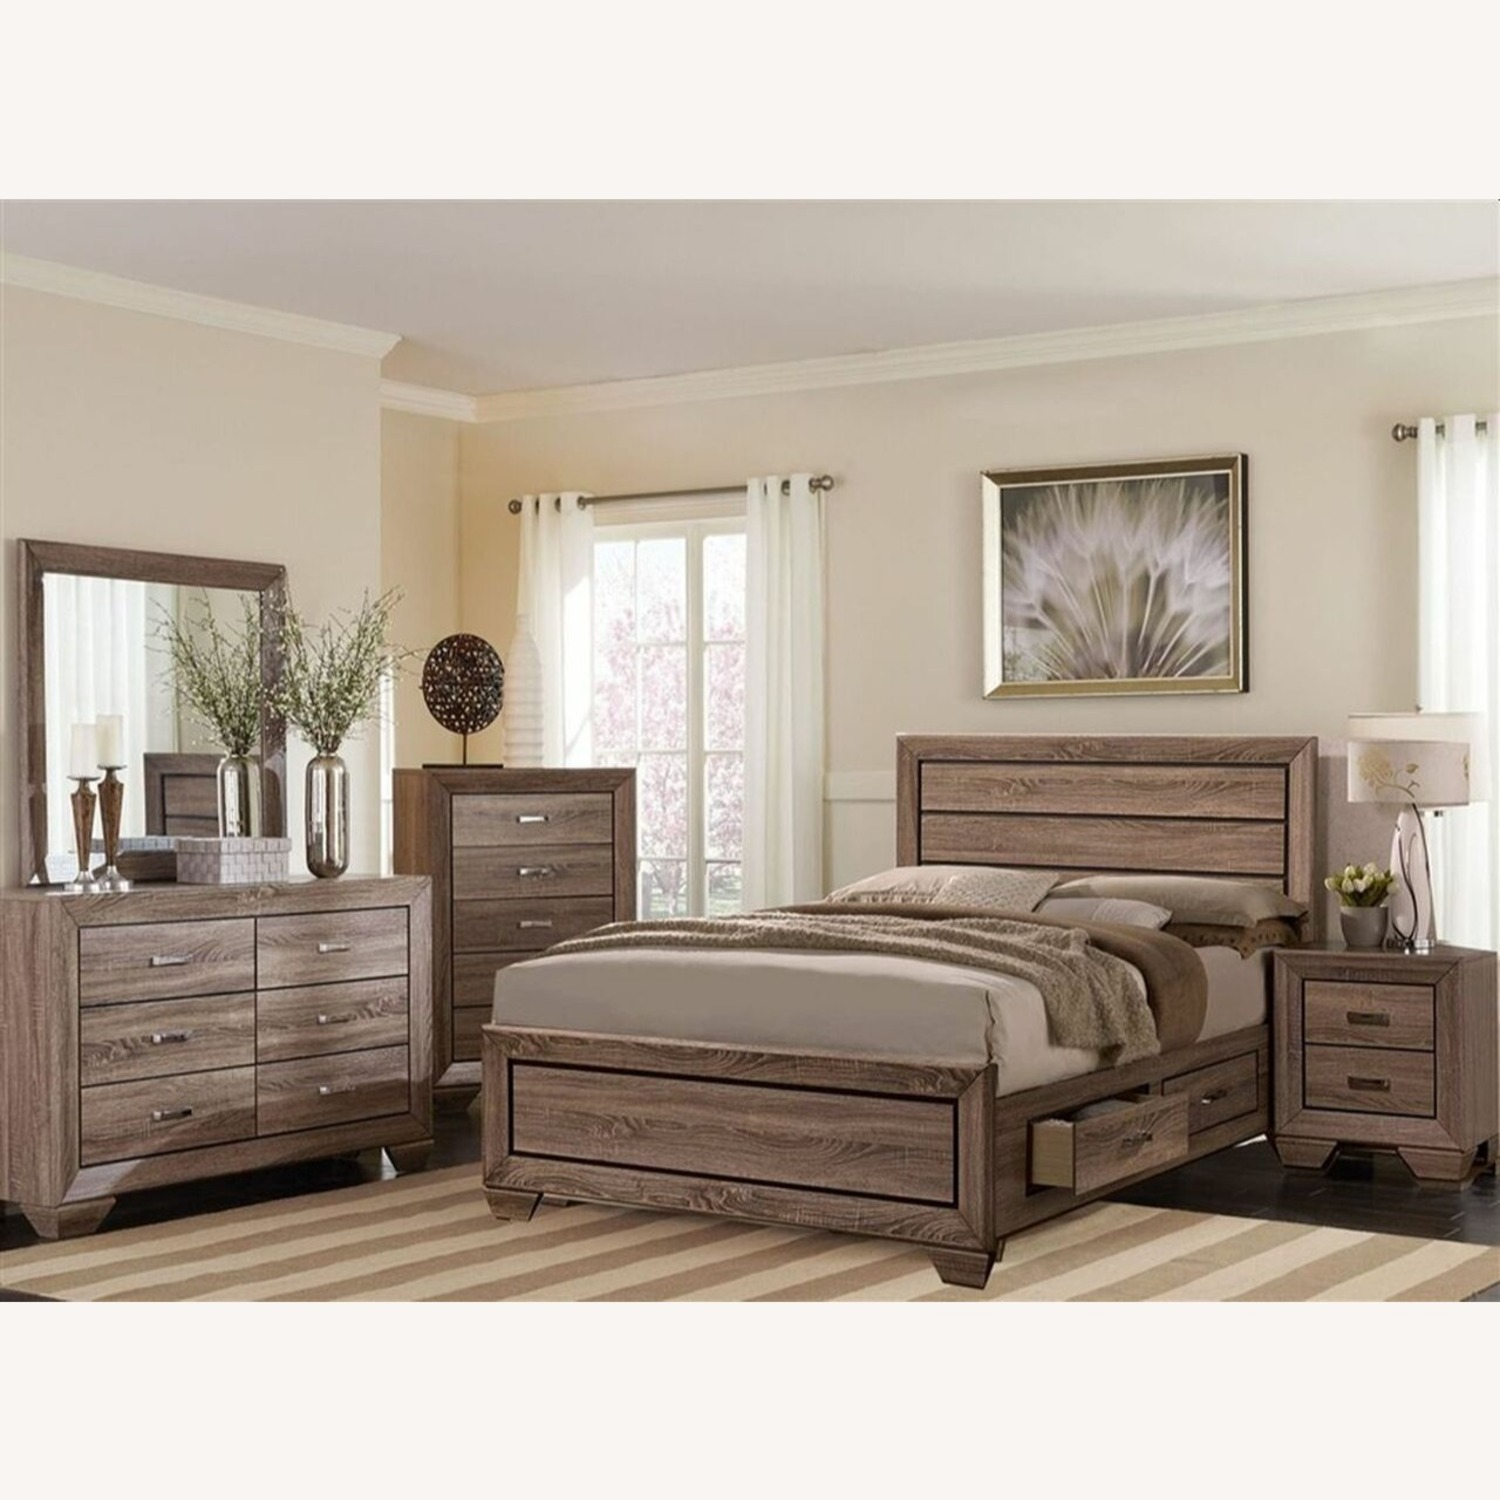 Storage King Bed In Washed Taupe Wood Finish - image-1